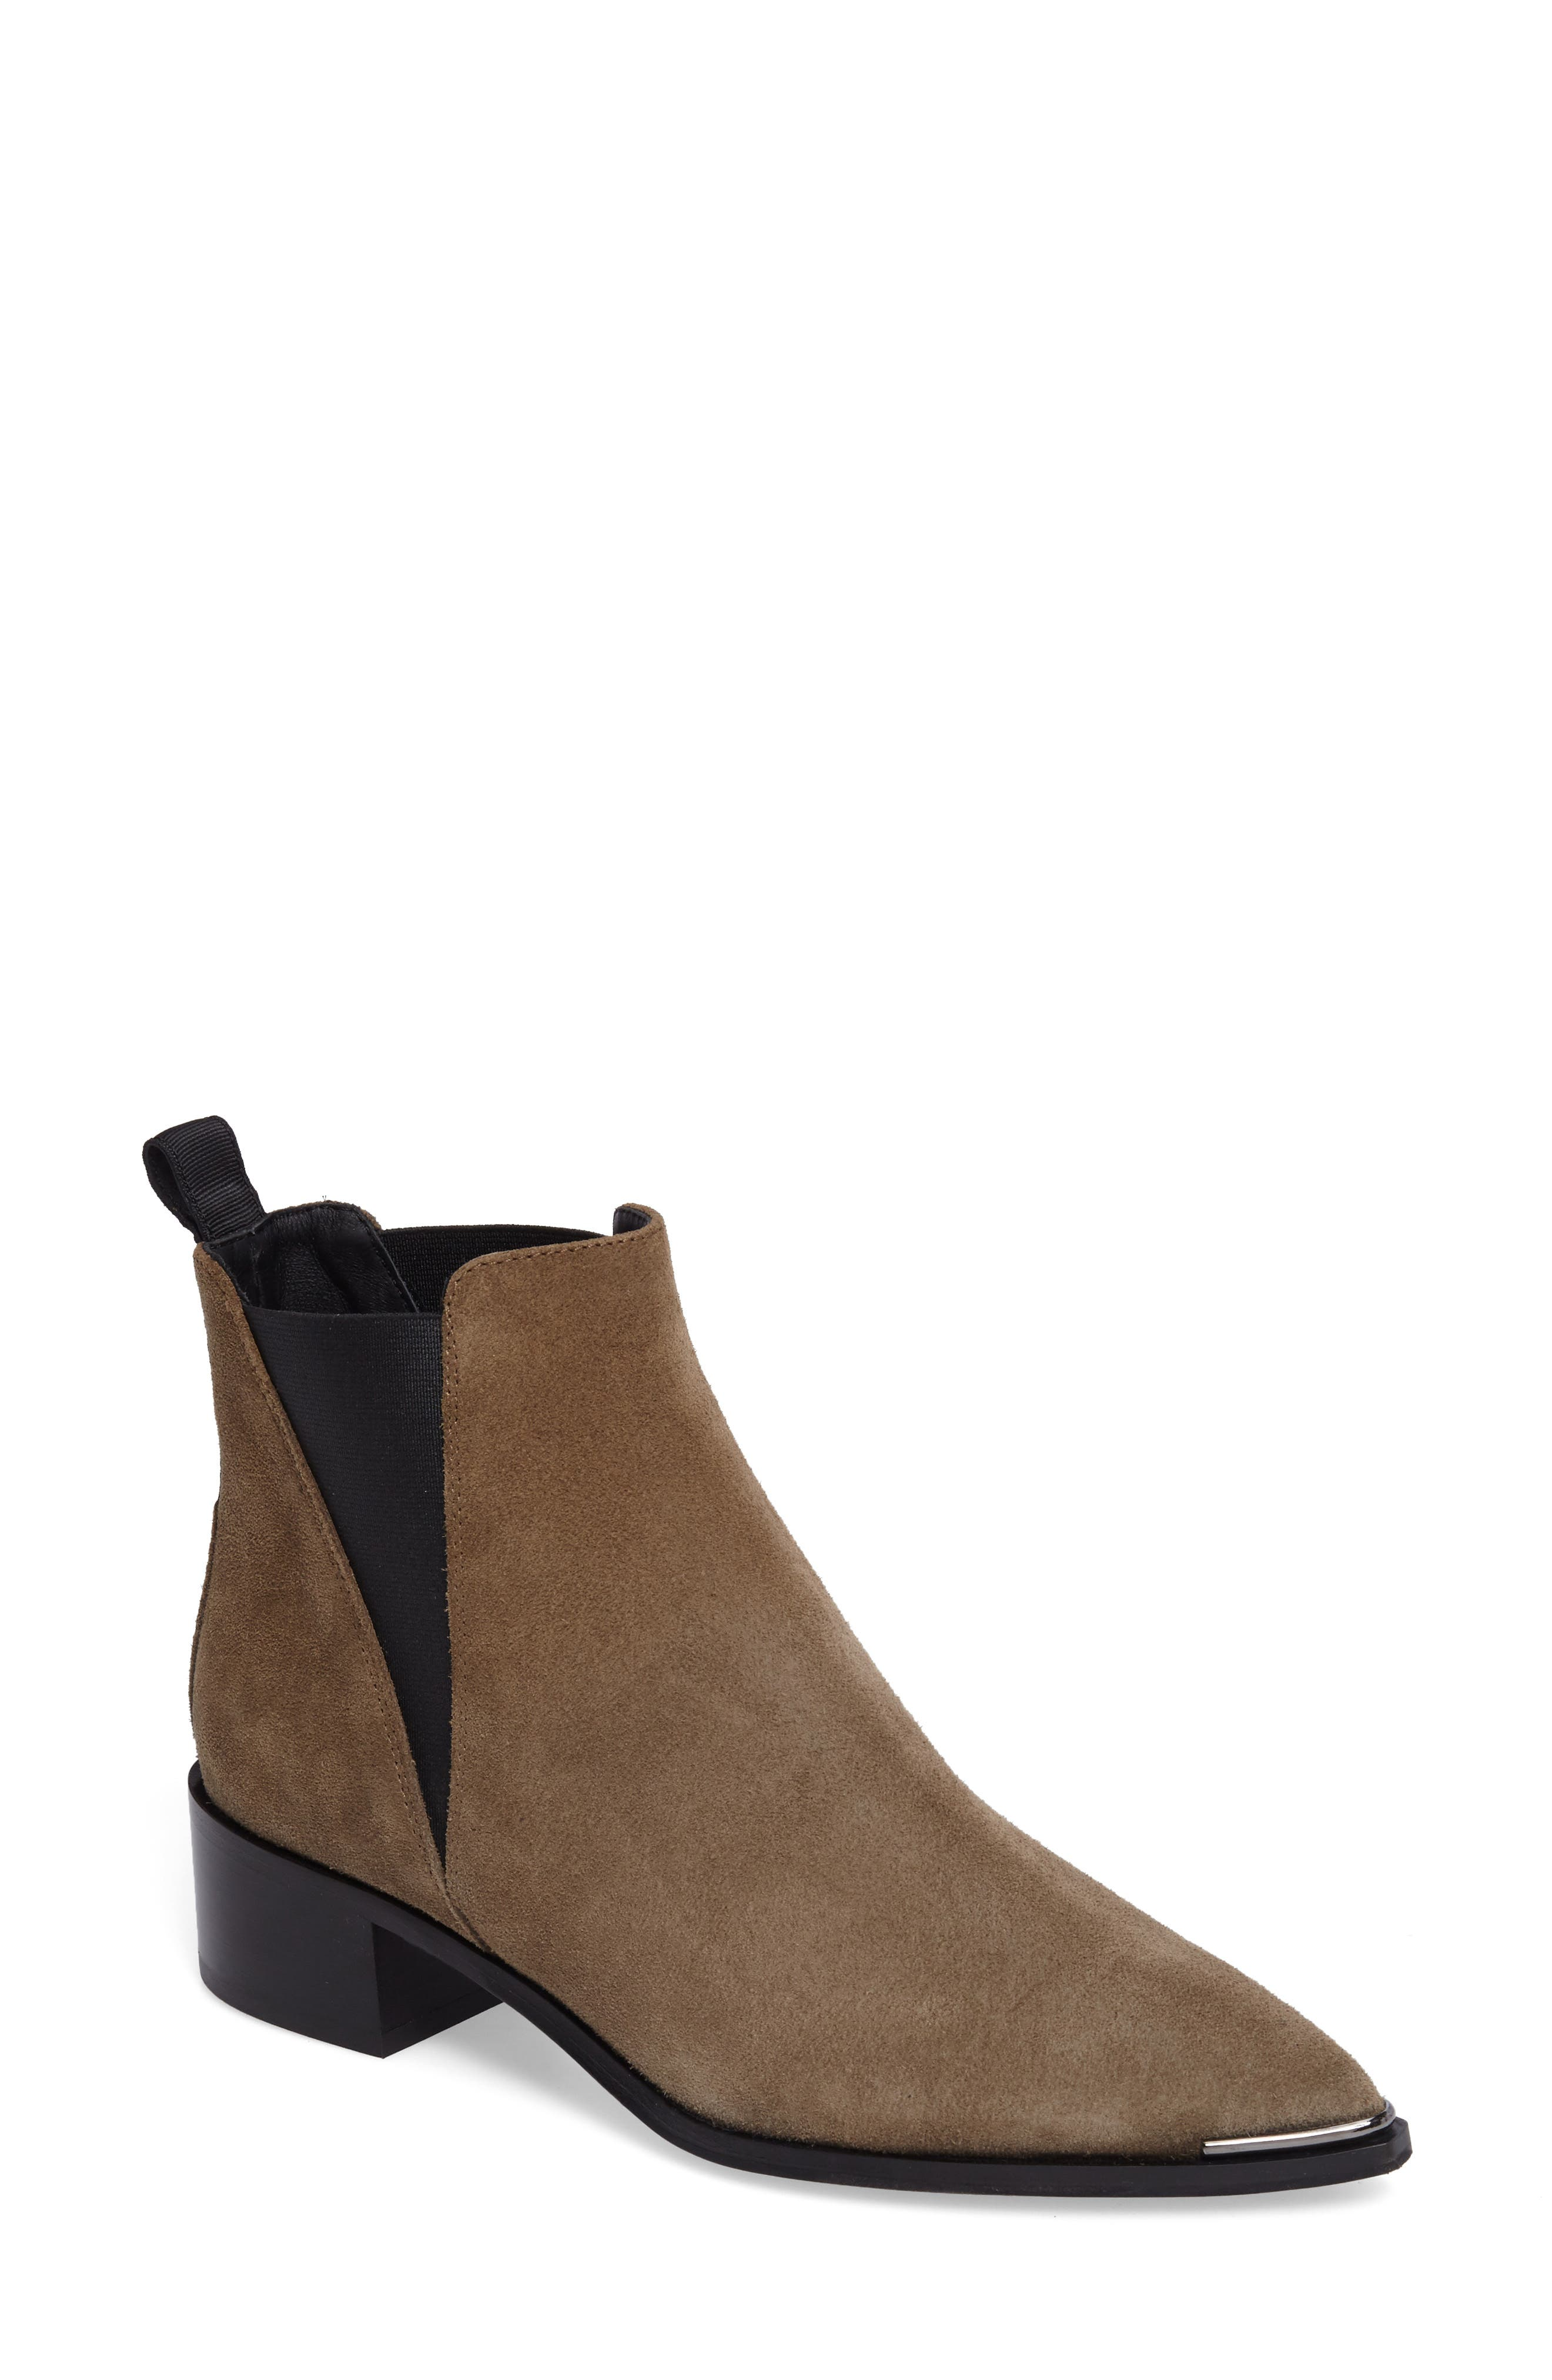 Alternate Image 1 Selected - ACNE Studios 'Jensen' Pointy Toe Bootie (Women)